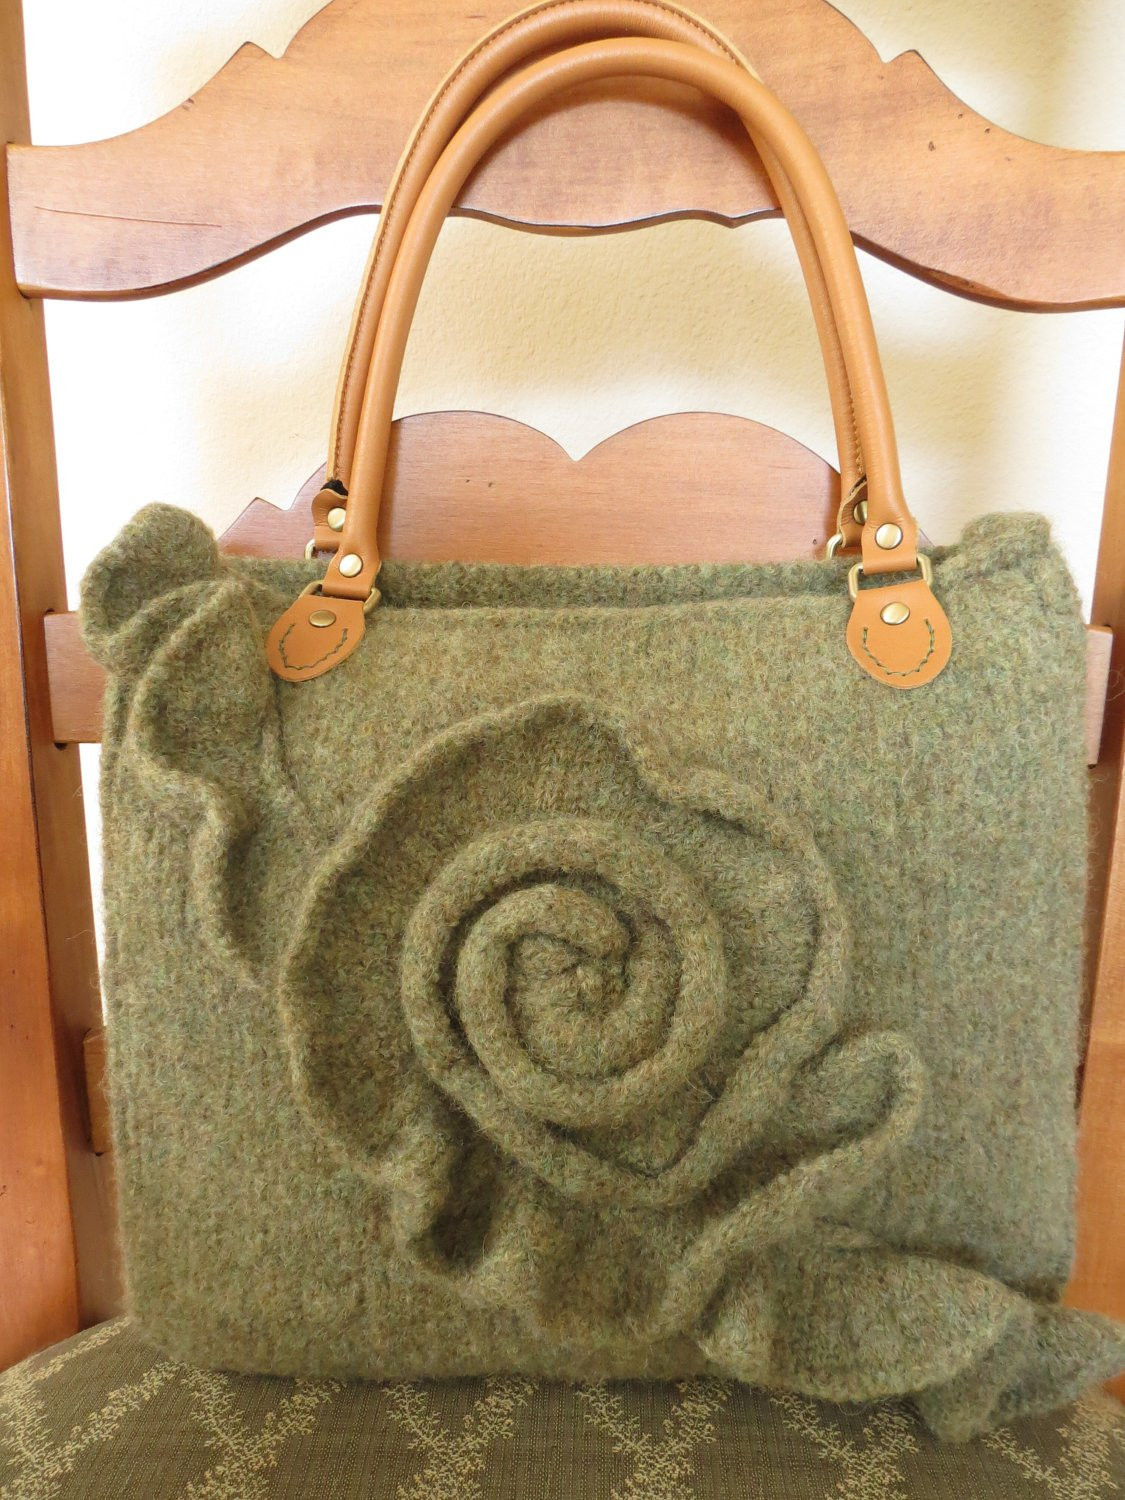 Beautiful Knit and Felted Purse Pattern Knit Bag Pattern Knit Knitting Bags and totes Of Marvelous 48 Ideas Knitting Bags and totes